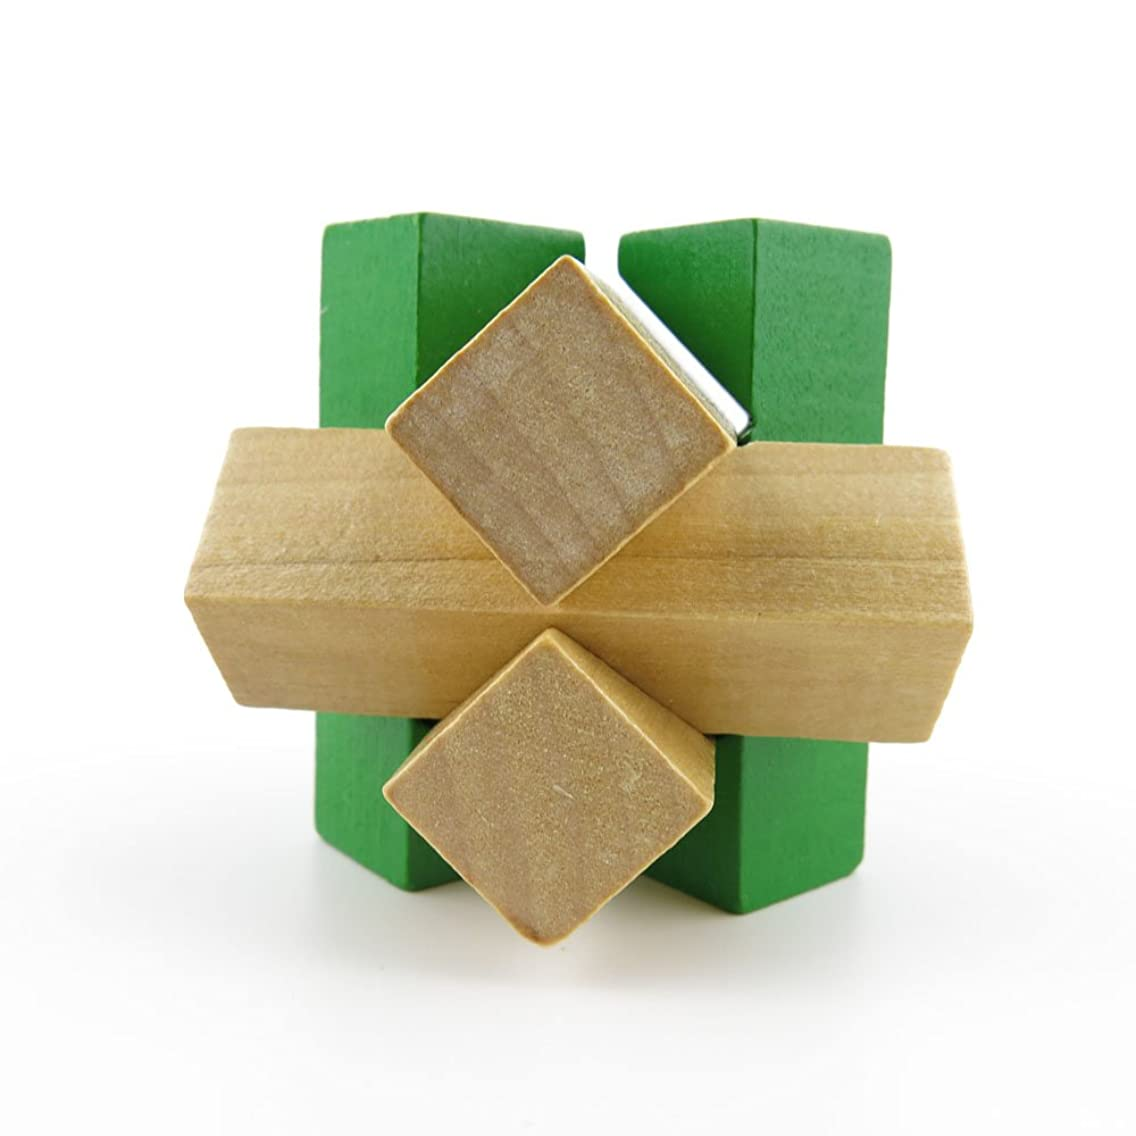 2 pcs Puzzle Game 04668 Green Wooden Kong Ming Lock Brain Teaser Puzzles Toys Jouets